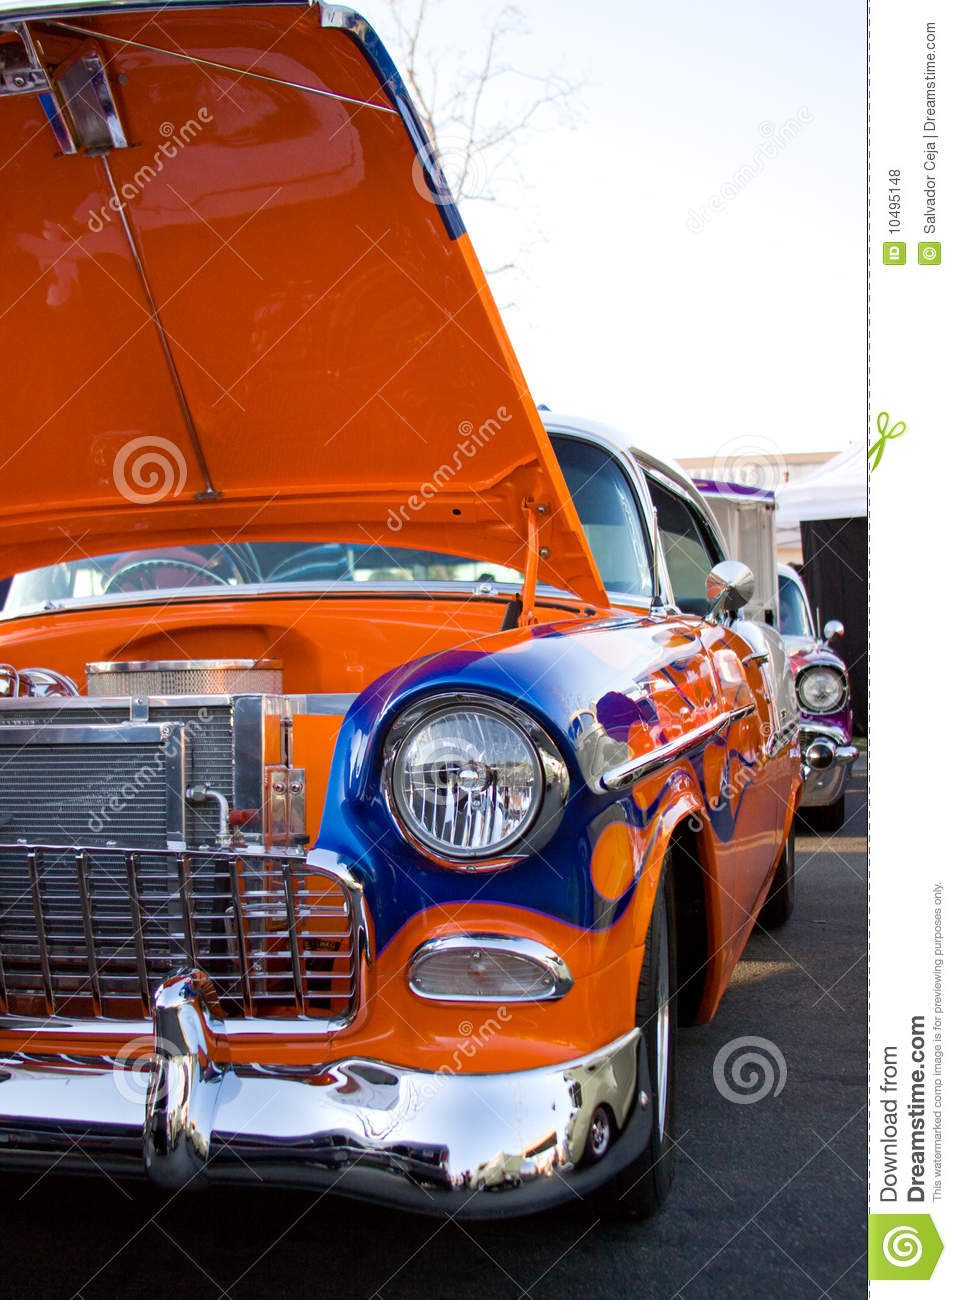 Vintage Classic Car Chrome Mirror Royalty Free Stock Photo